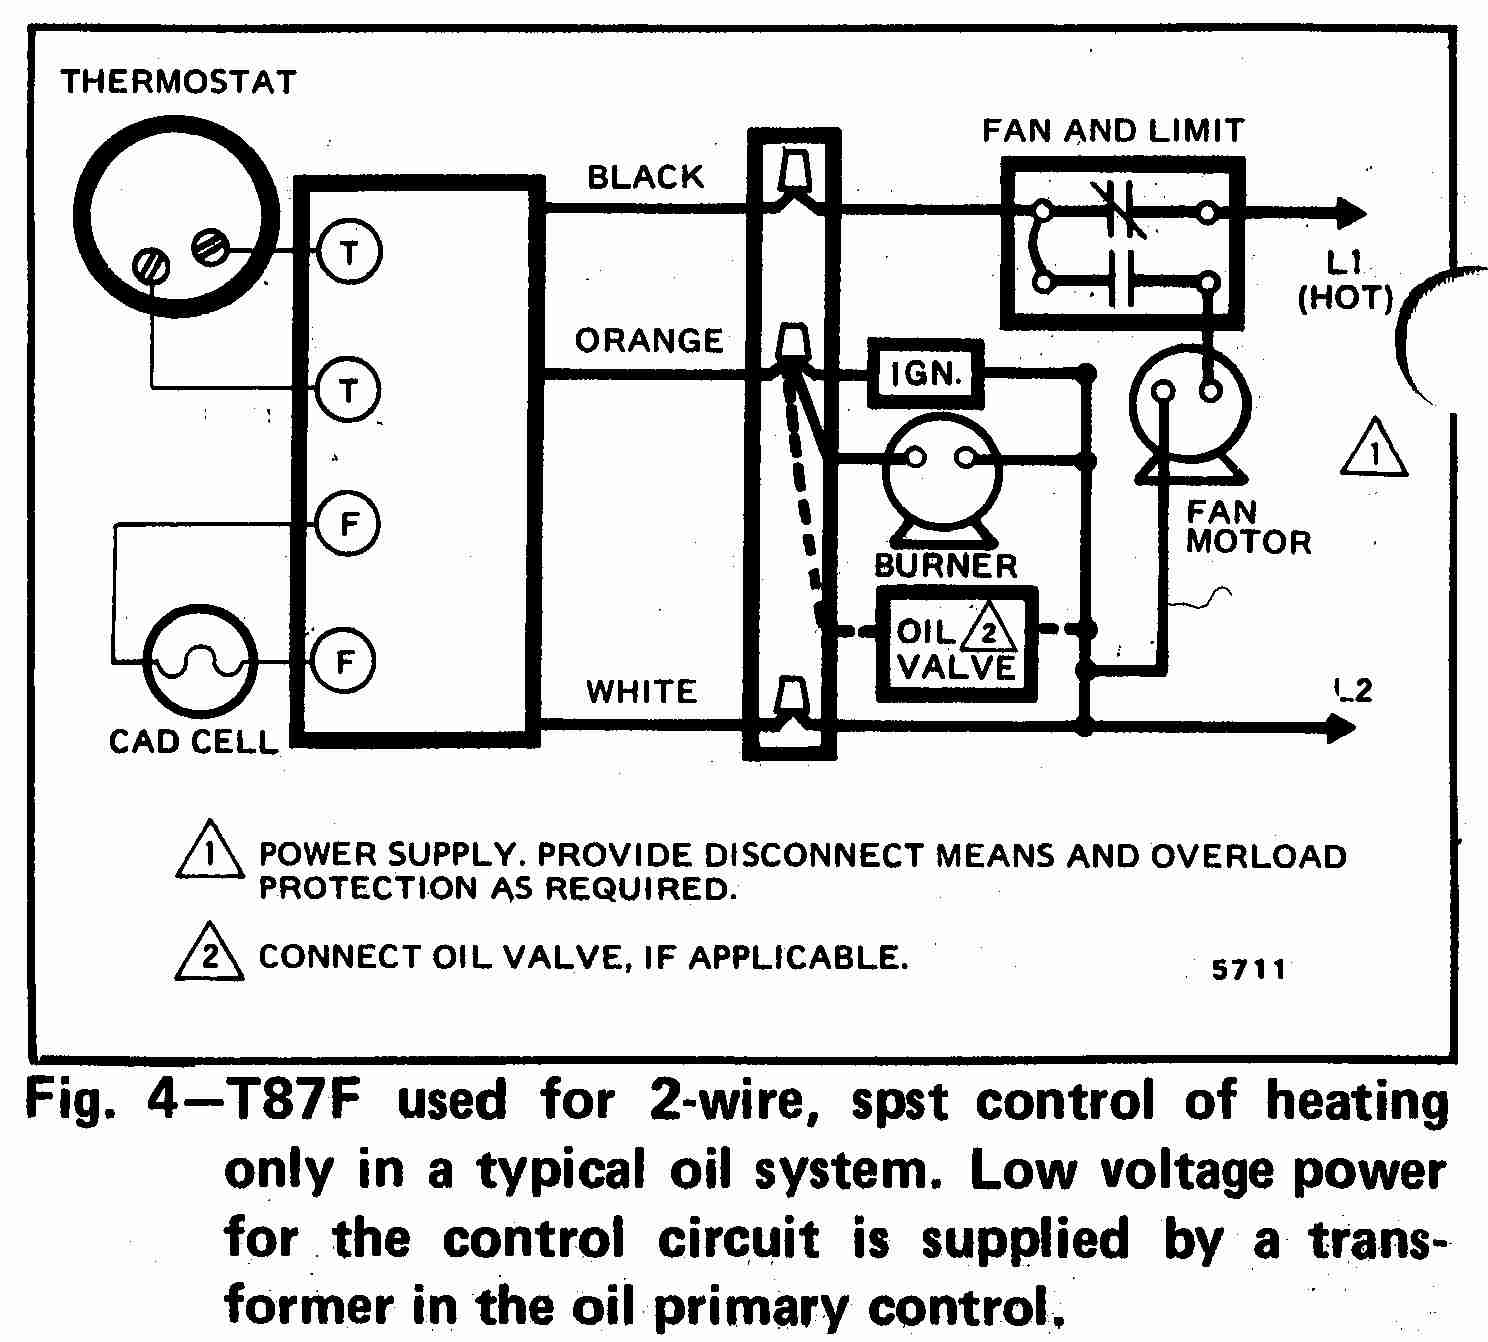 TT_T87F_0002_2W_DJF wiring diagram for thermostat heat pump thermostat wiring \u2022 free LuxPro Thermostat Manual at virtualis.co